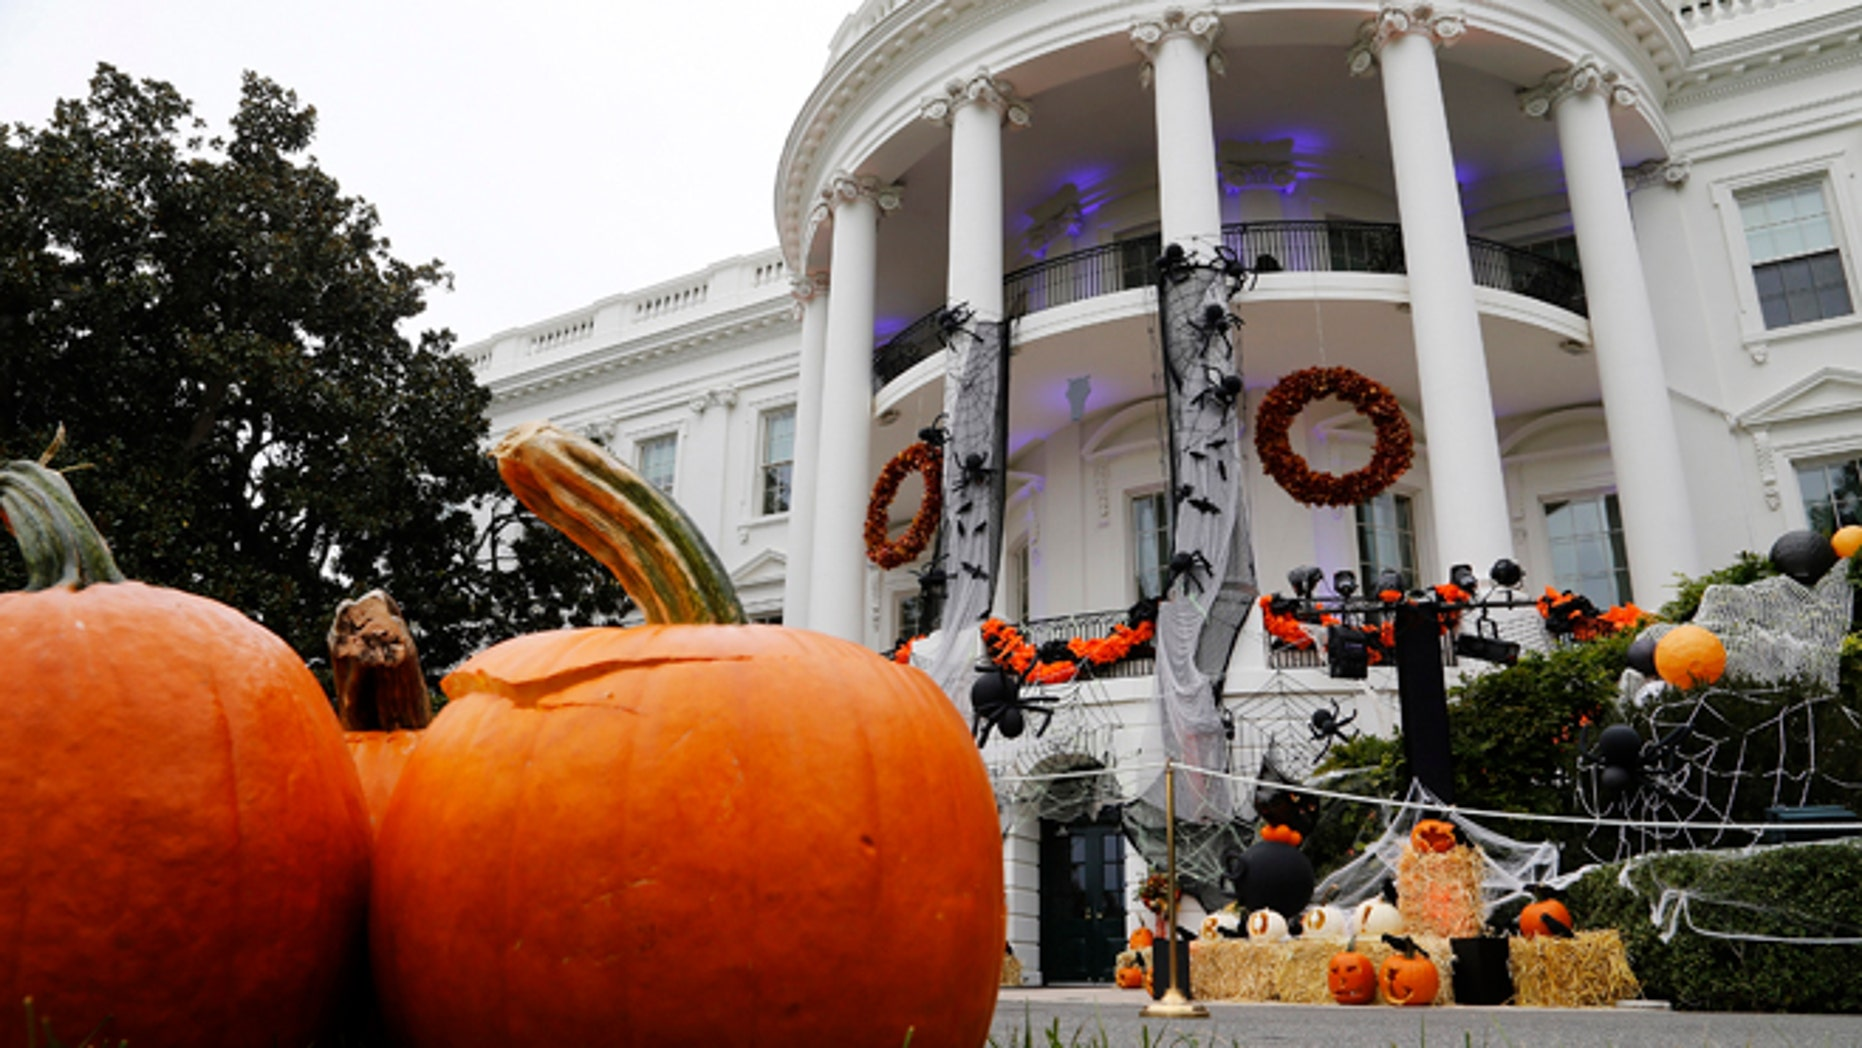 Oct. 31, 2013: Jack-o'-lanterns and other Halloween decorations are displayed ahead of a reception for children on the South Lawn at the White House in Washington.